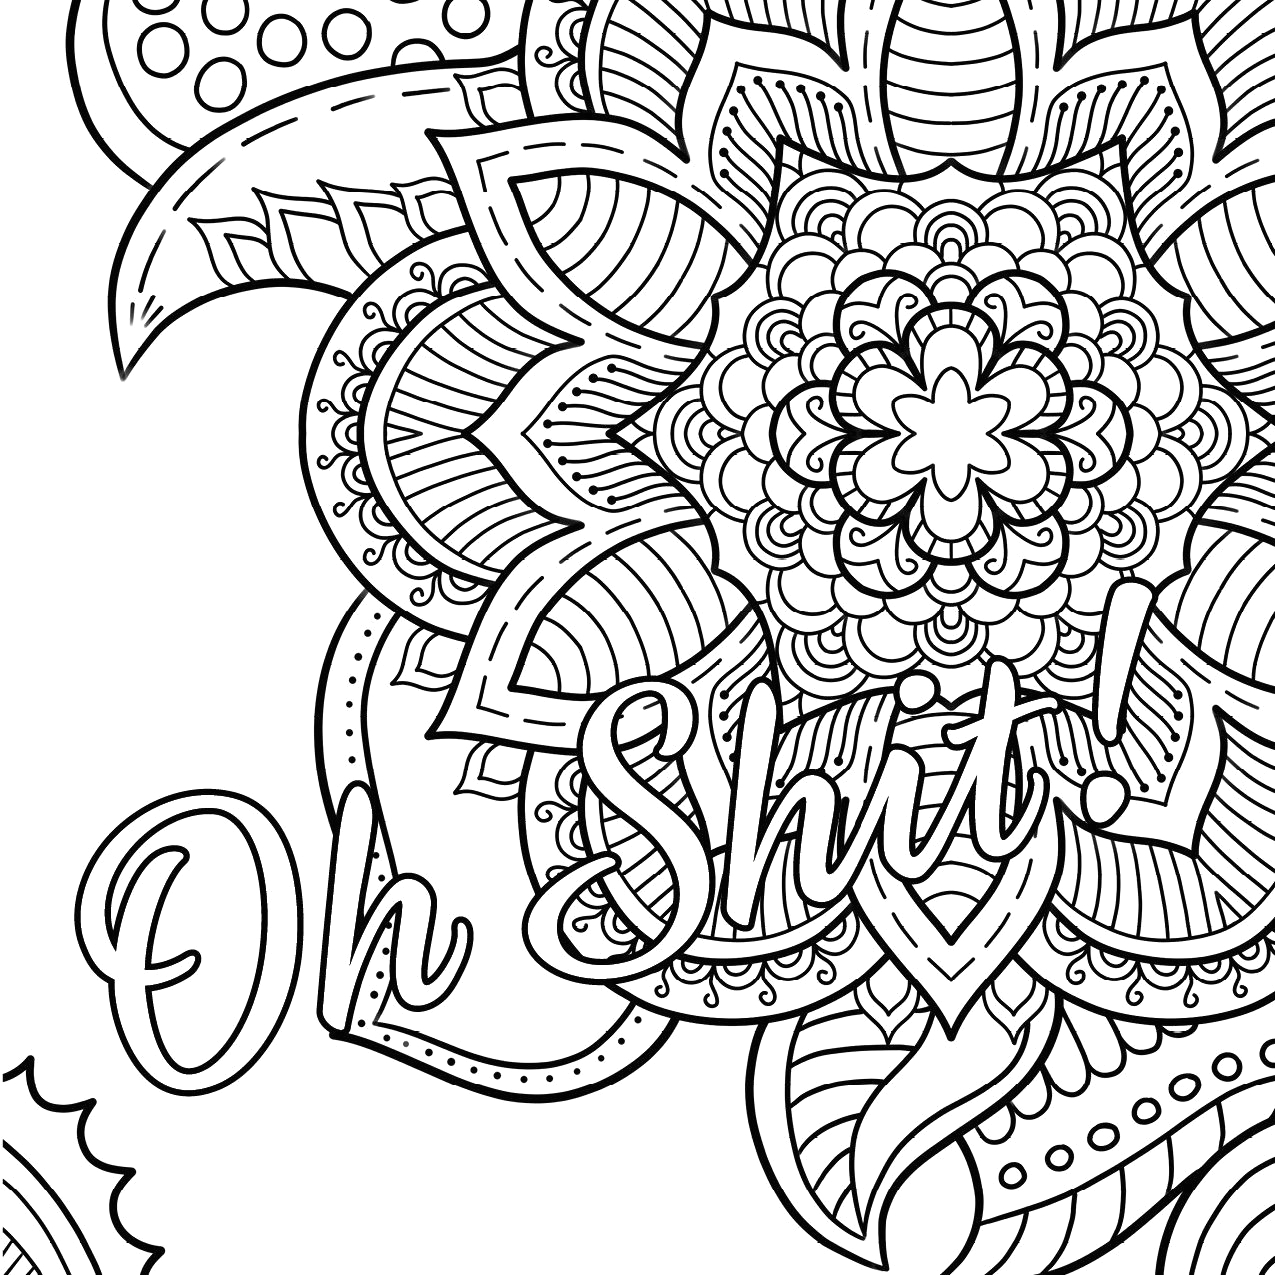 Free Online Coloring Pages for Adults Swear Words Free Printable Coloring Pages for Adults Swear Words